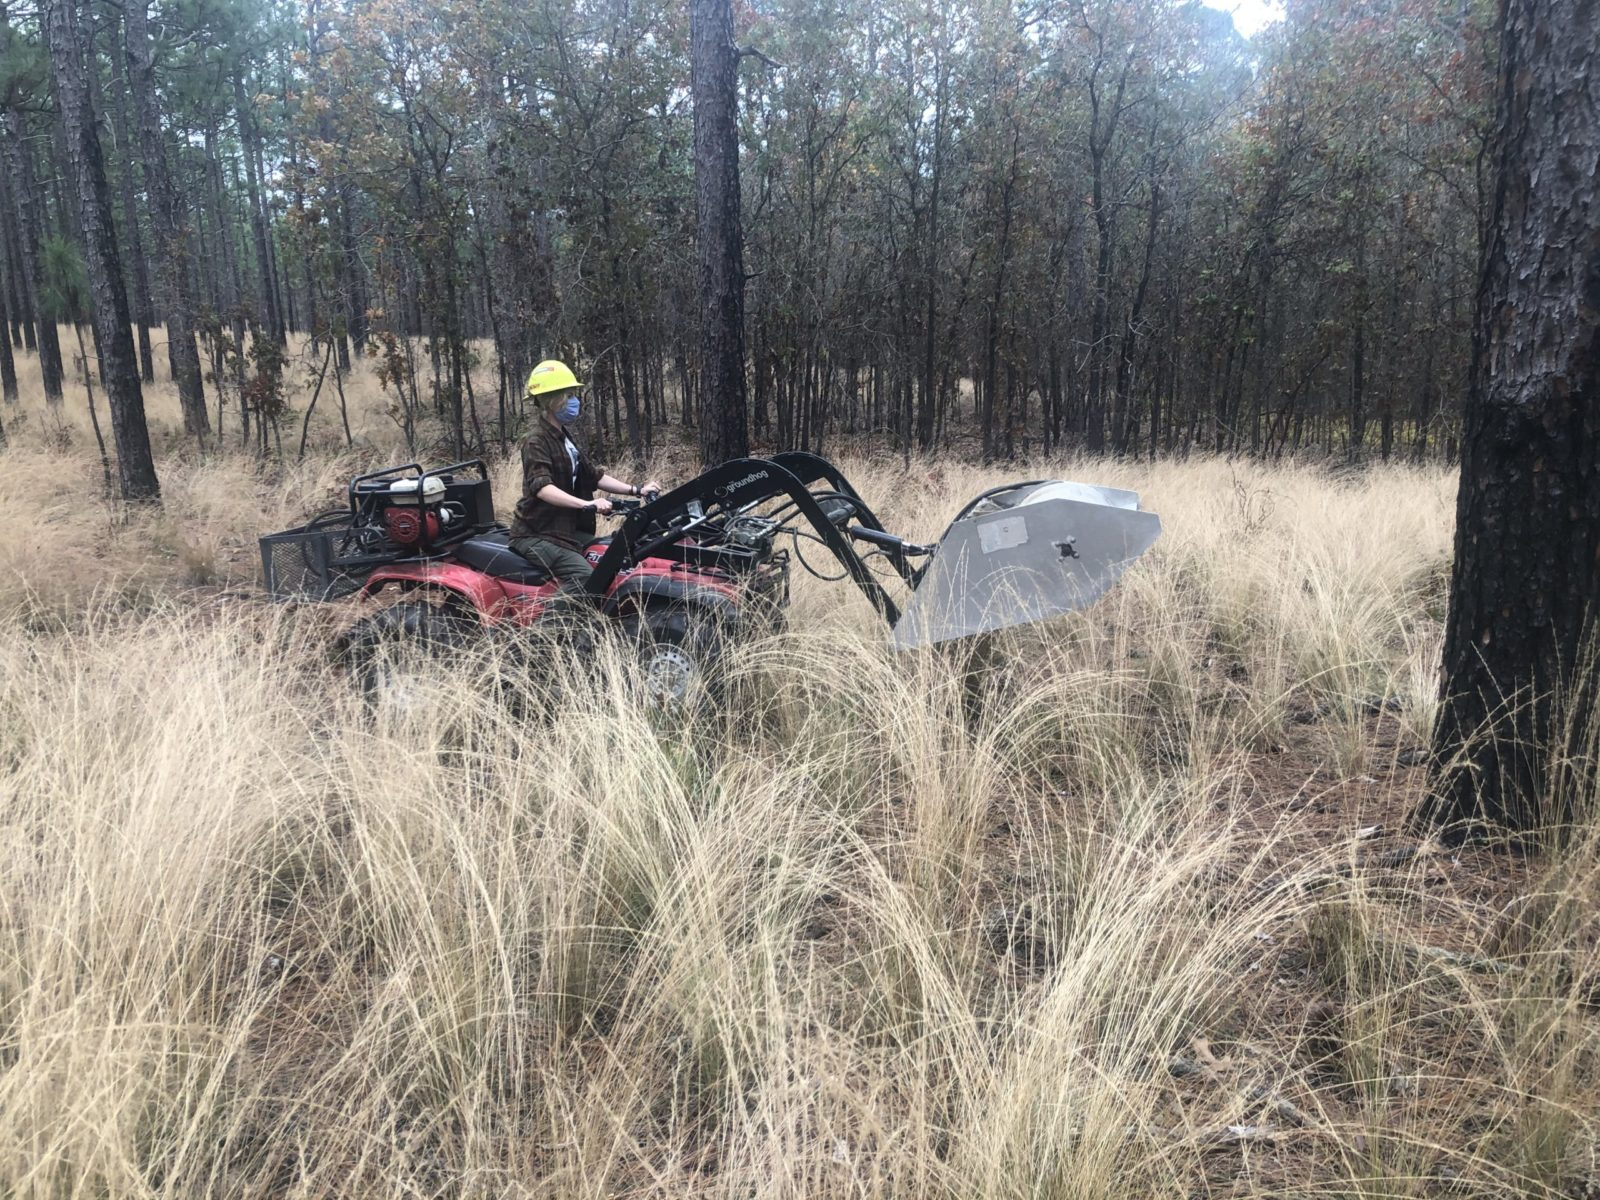 A seed harvester, or flail vac, is crucial in gathering sufficient native seed to conduct native groundcover restoration at scale. Carvers Creek State Park, NC. Photo by Thomas Crate.